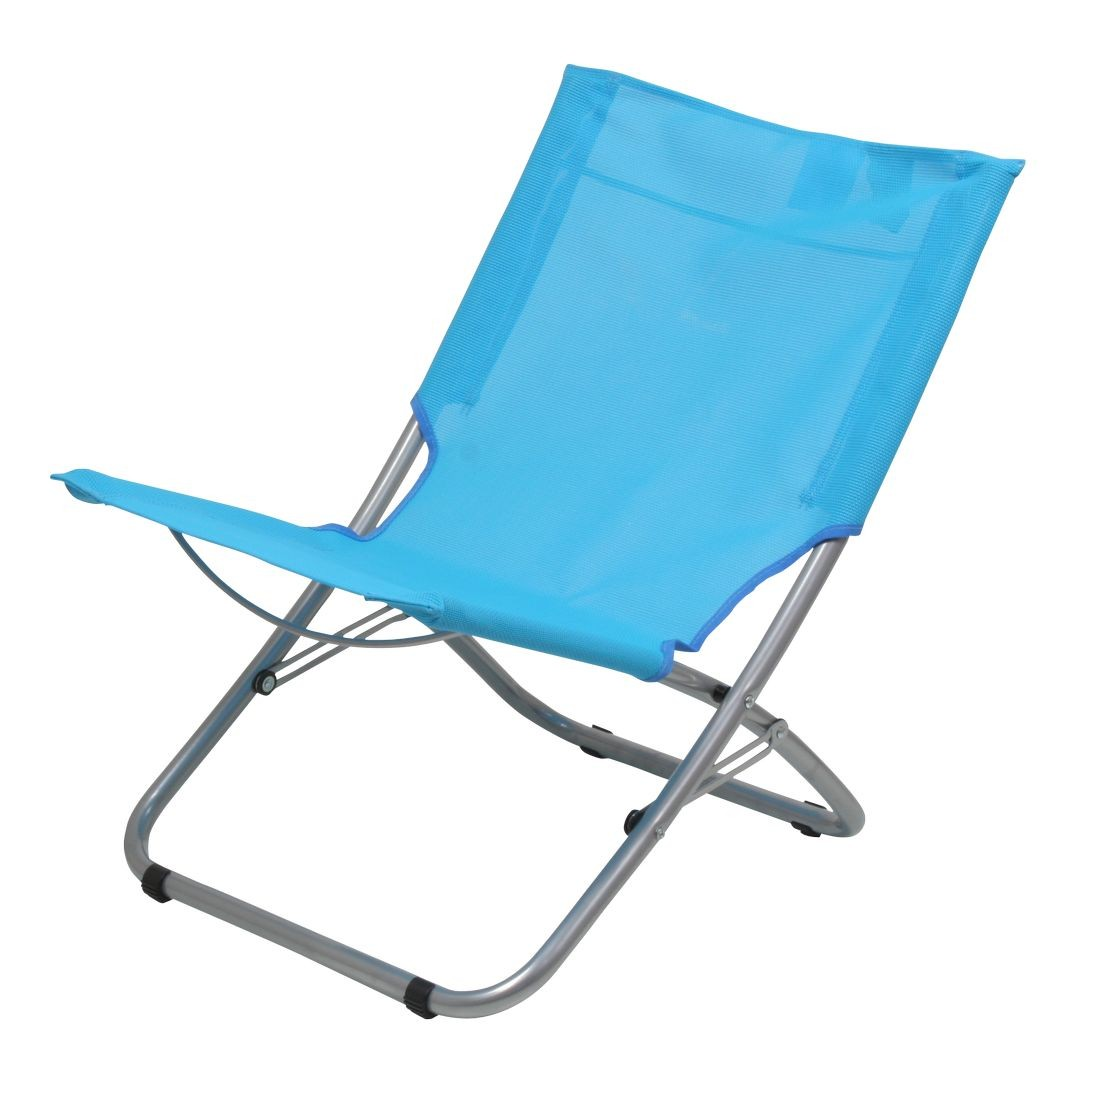 10T Outdoor Equipment   SunCHAIR   Image 1